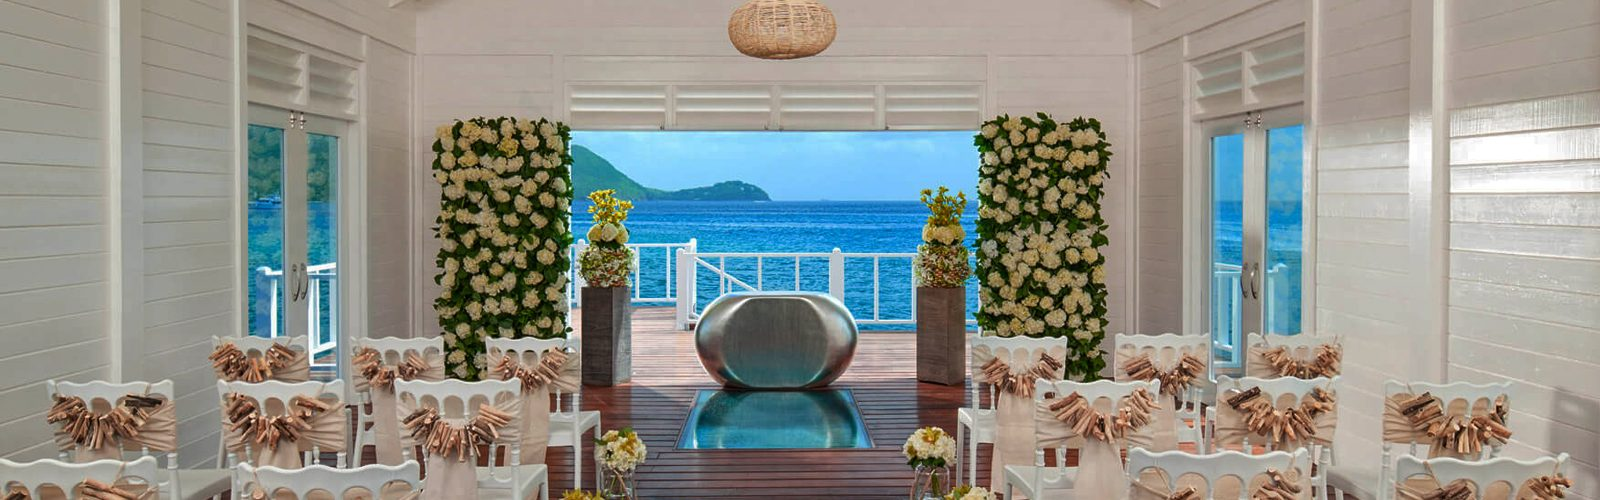 Header The Ultimate Guide To Getting Married At Sandals Resorts Caribbean Weddings